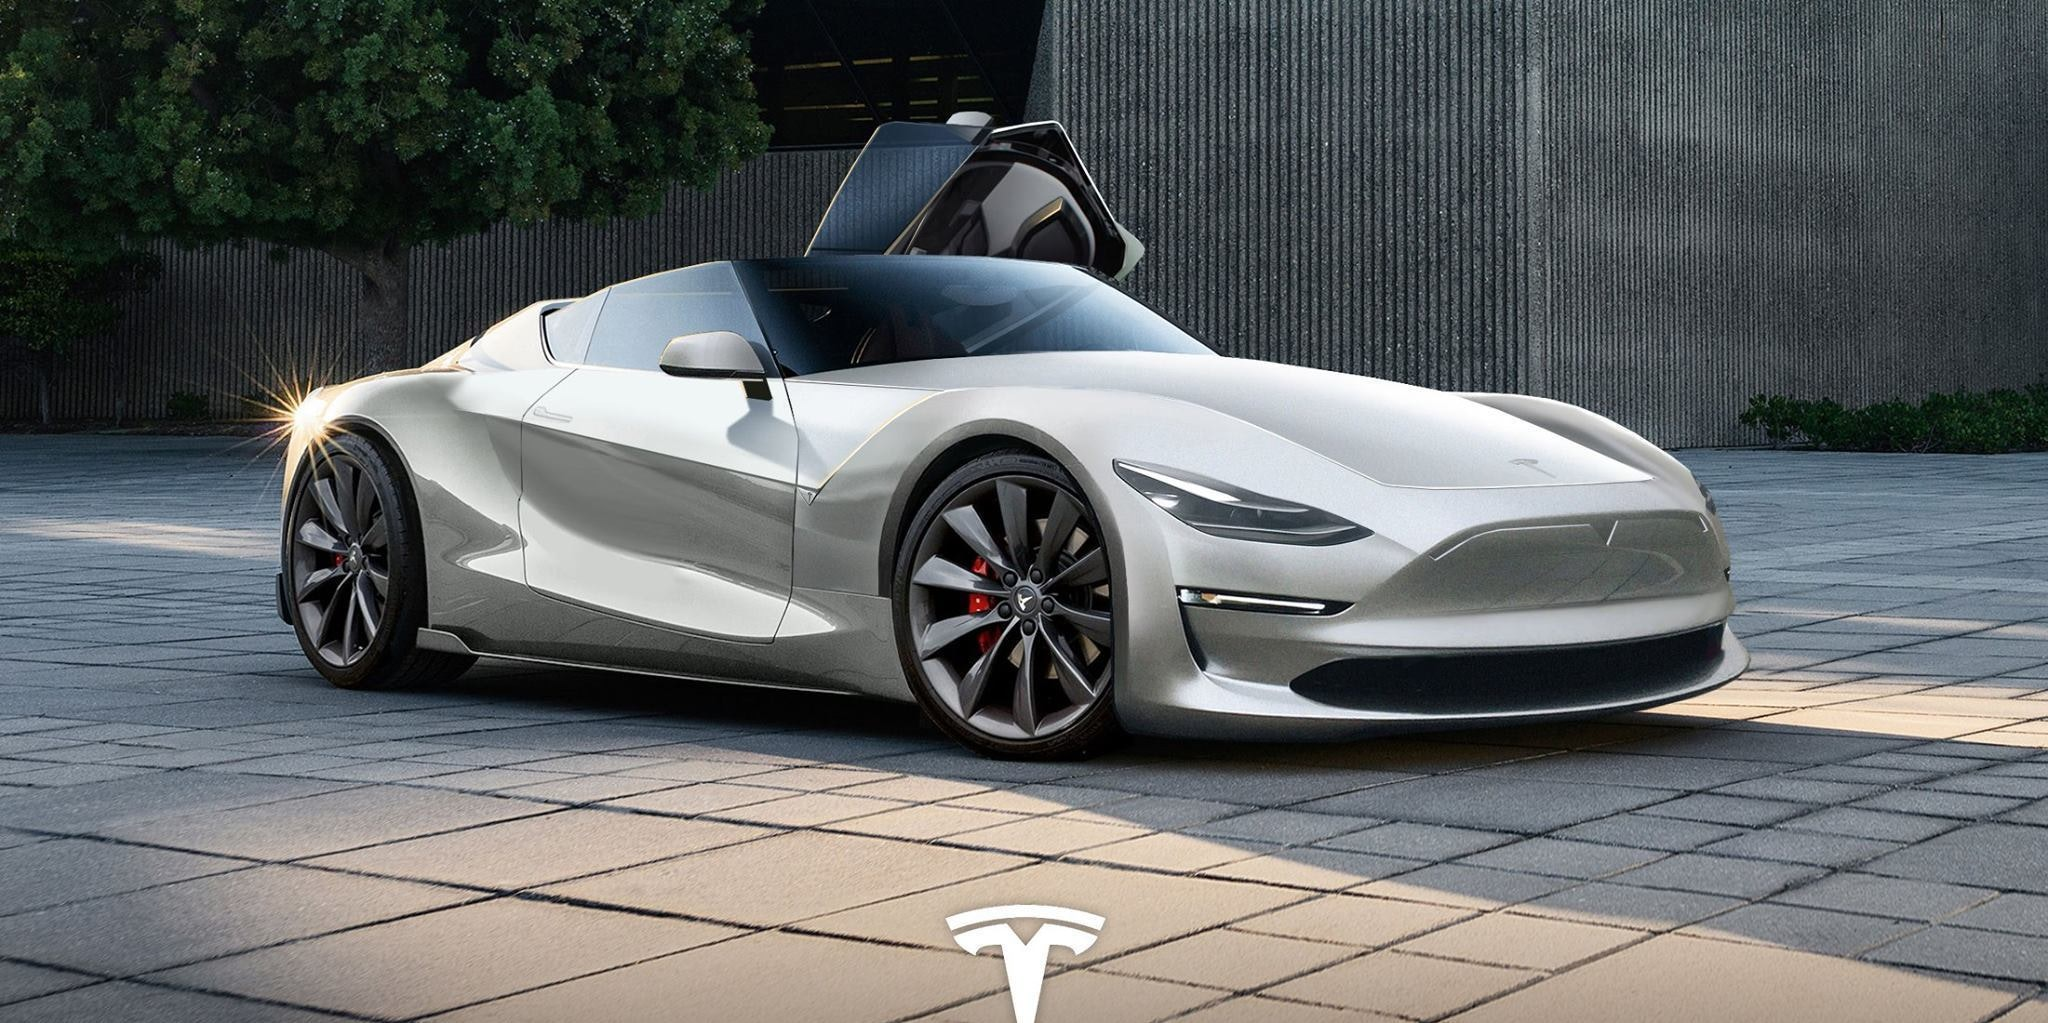 Tesla 2019 >> The 2019 Tesla Roadster May Break Speed Records Elon Musk Hints